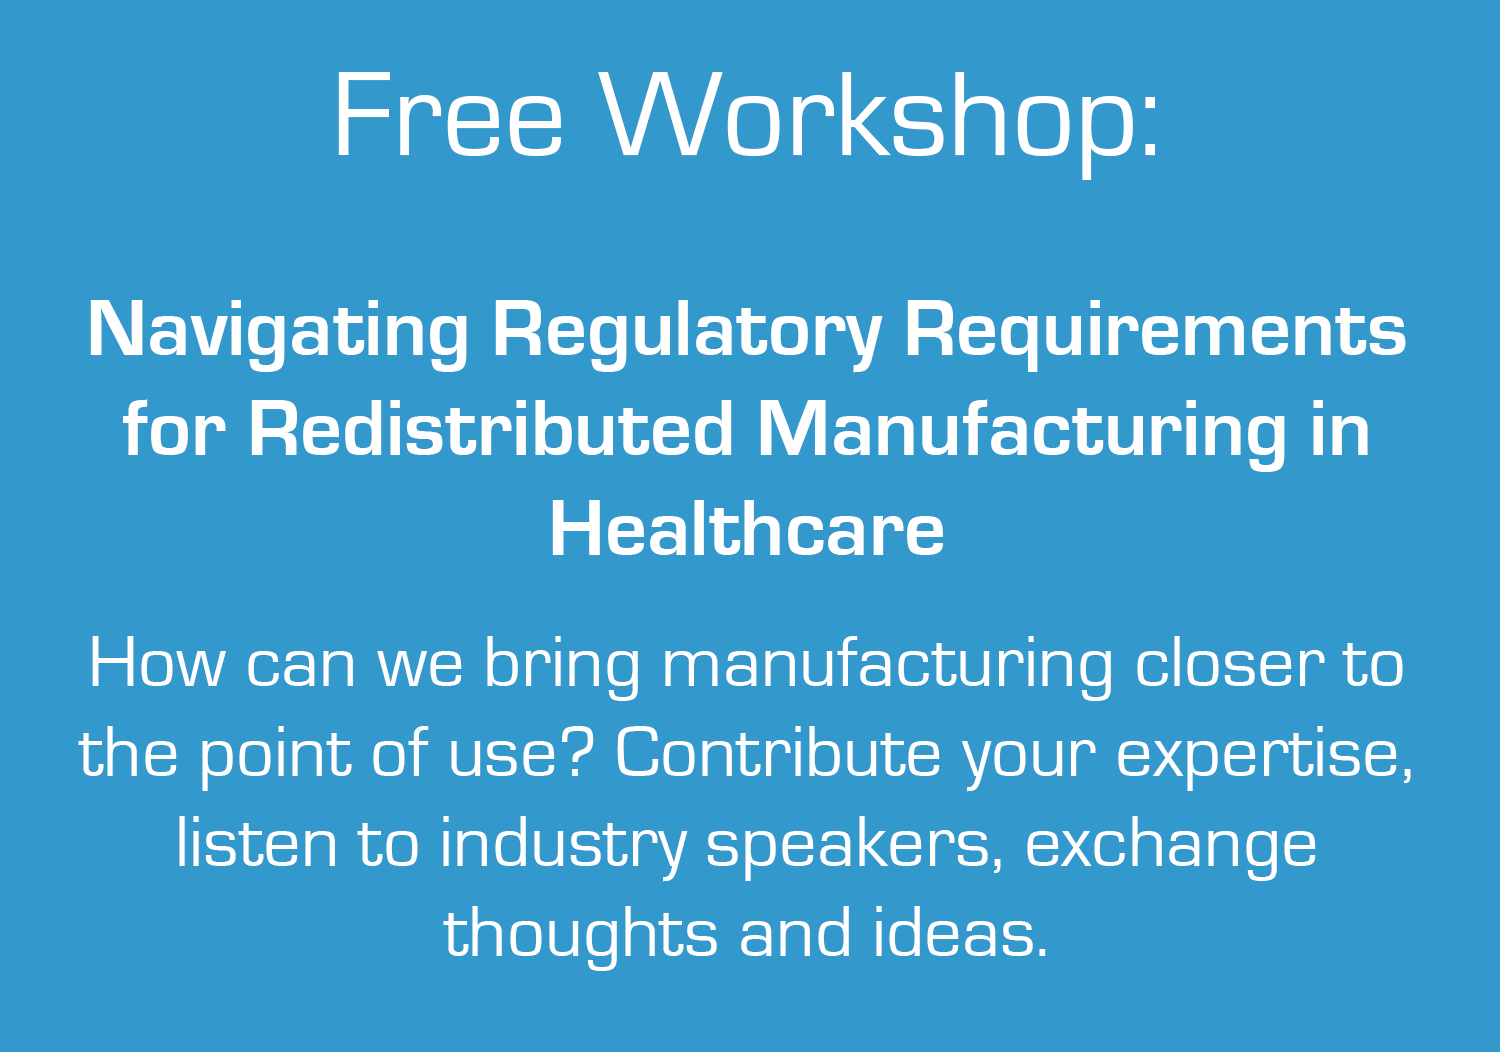 Navigating Regulary Requirements for Redistributed Manufacturing in Healthcare - free event